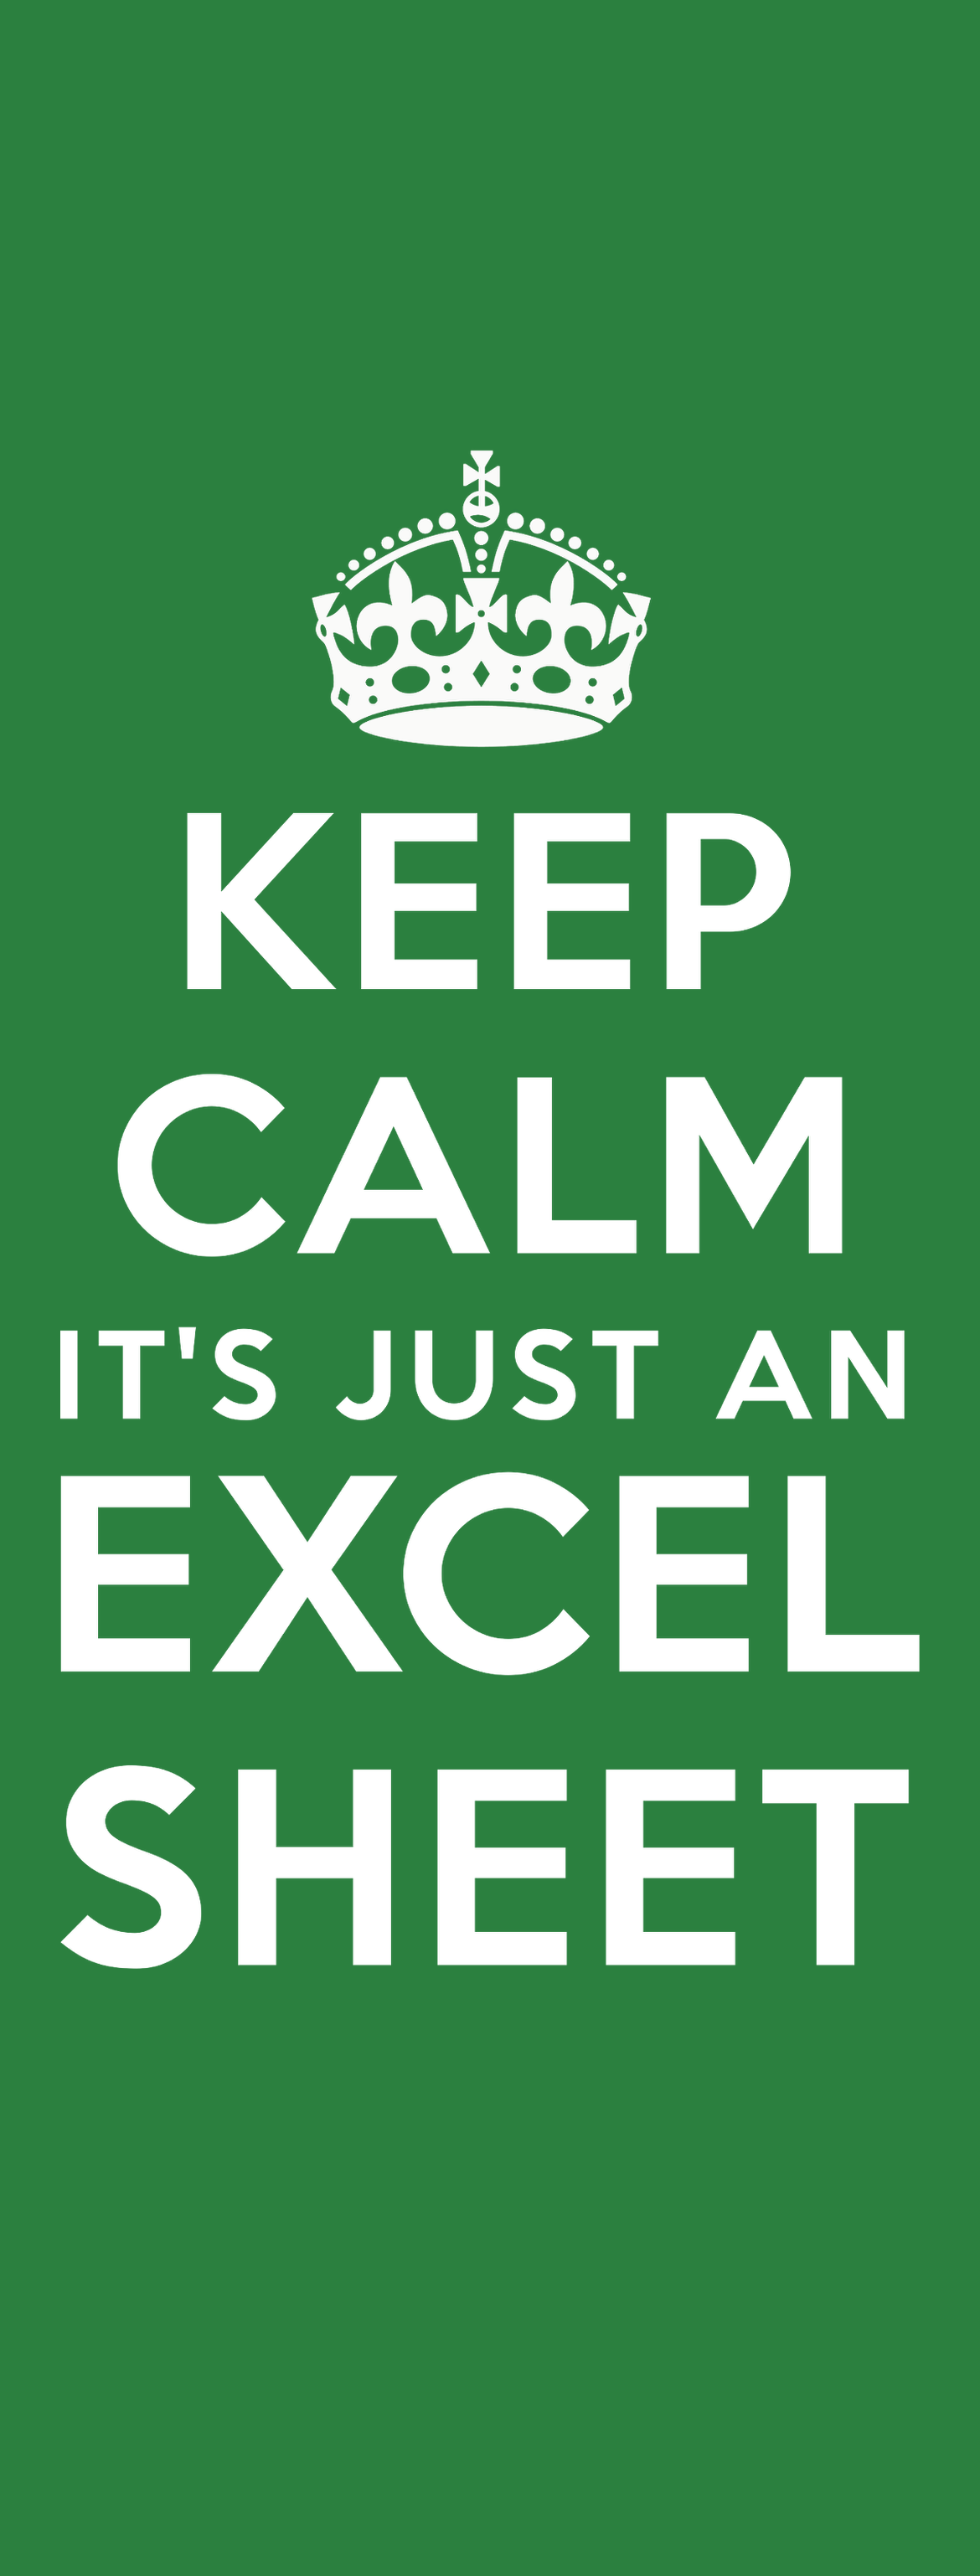 wallpaper, mobile, excel, free, keep, calm, spreadsheet